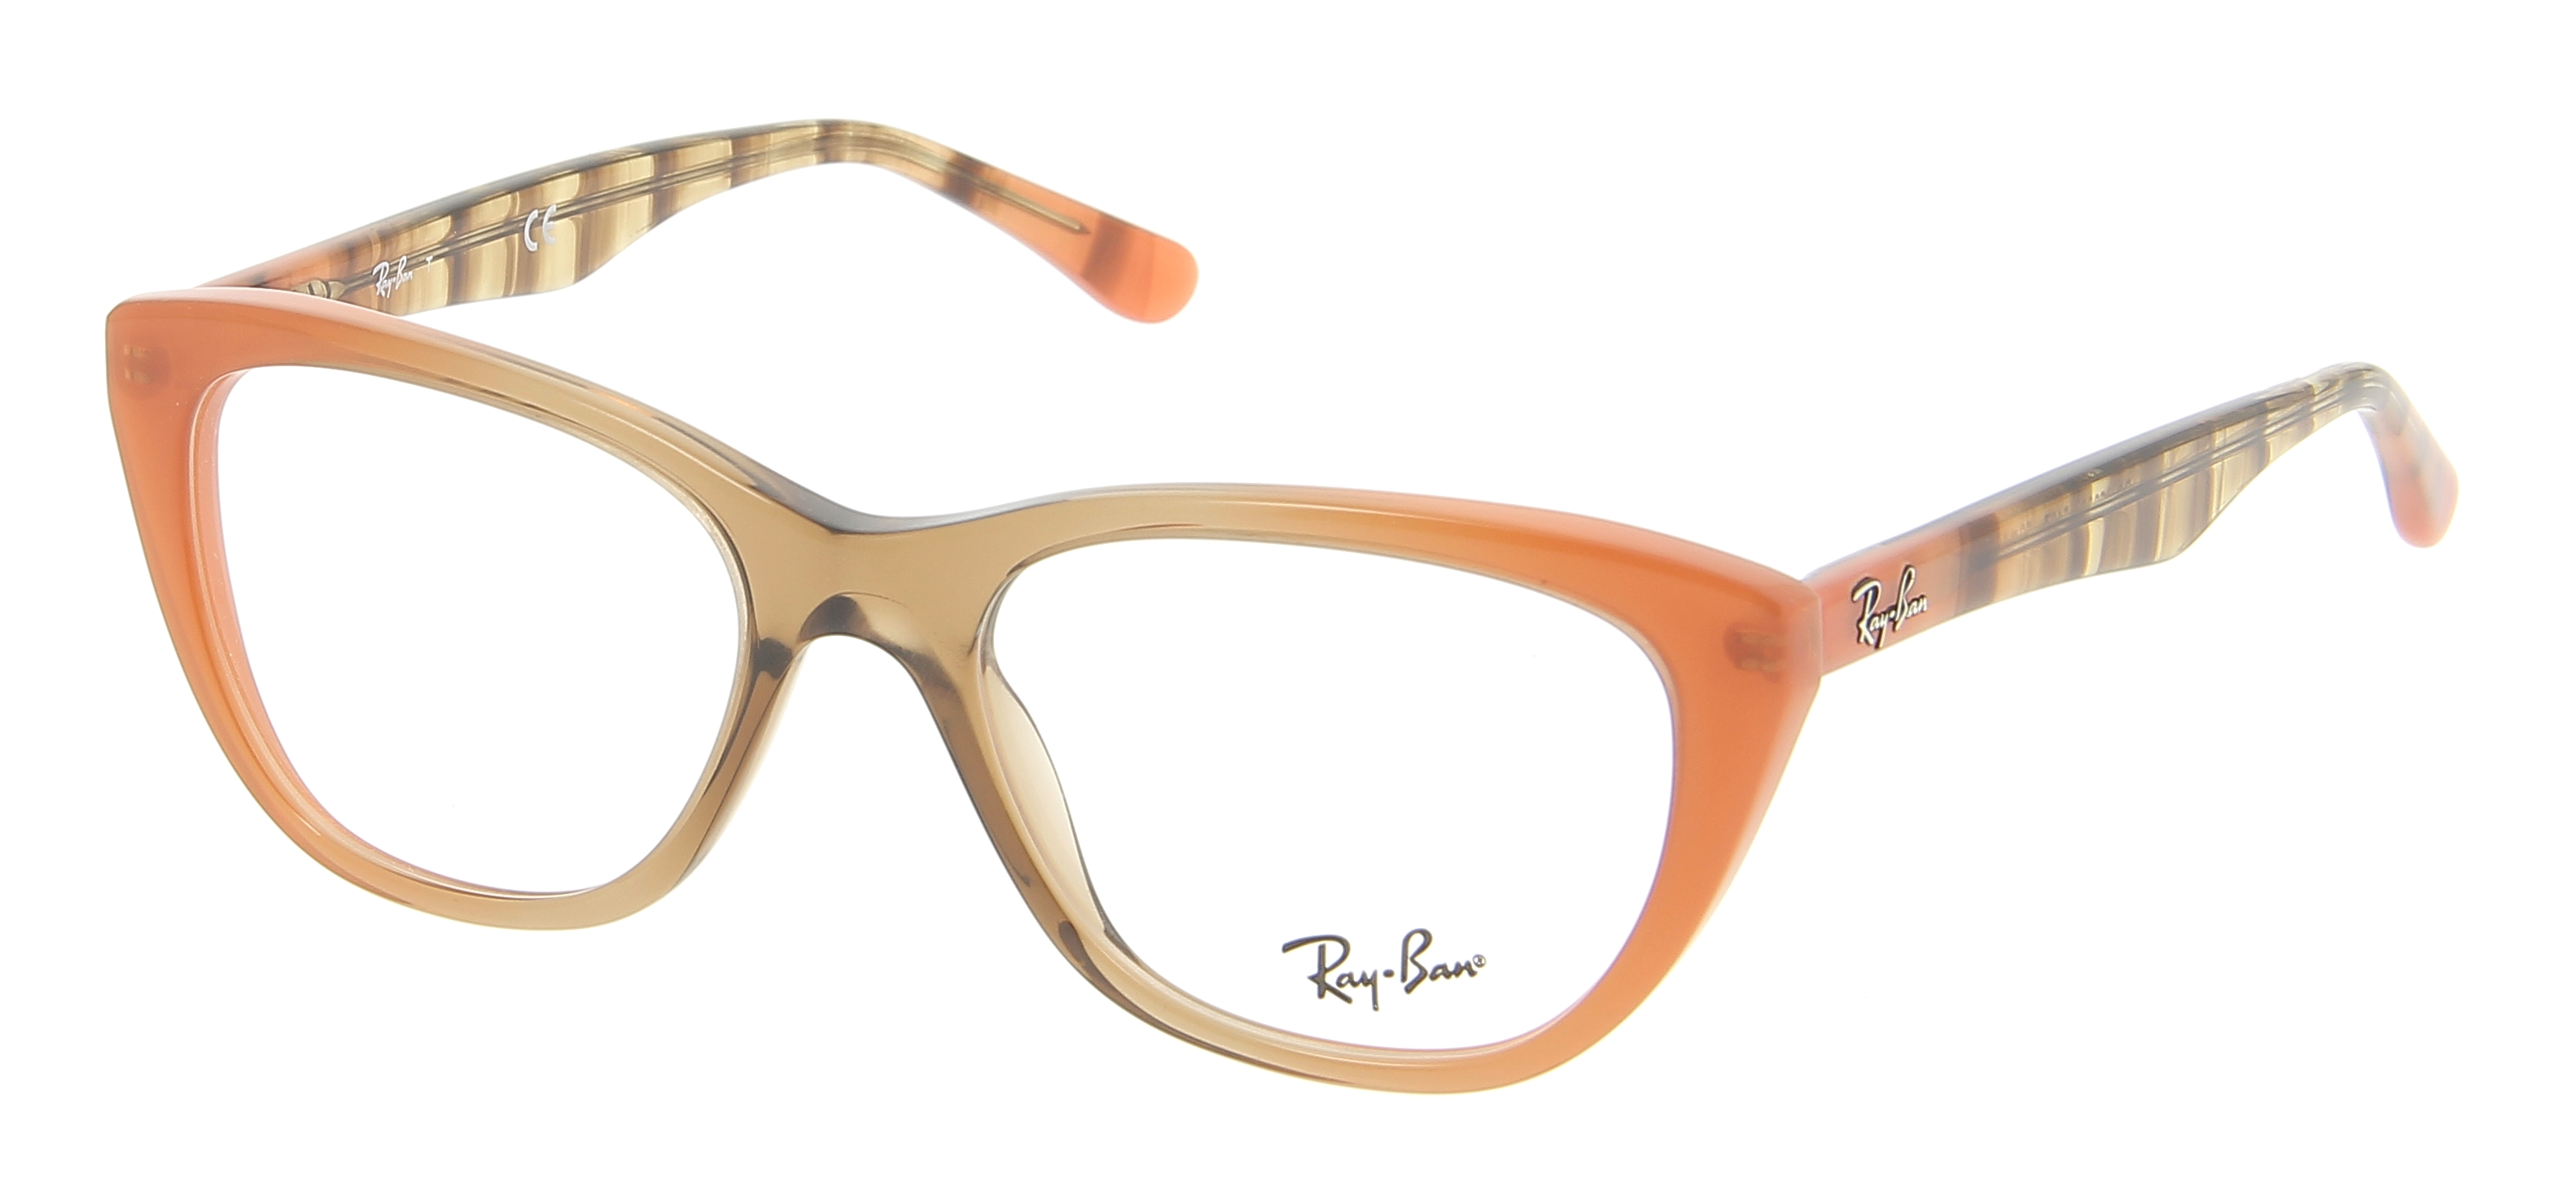 Eyeglasses RAY-BAN RX 5322 5487 53/18 Woman Marron ...